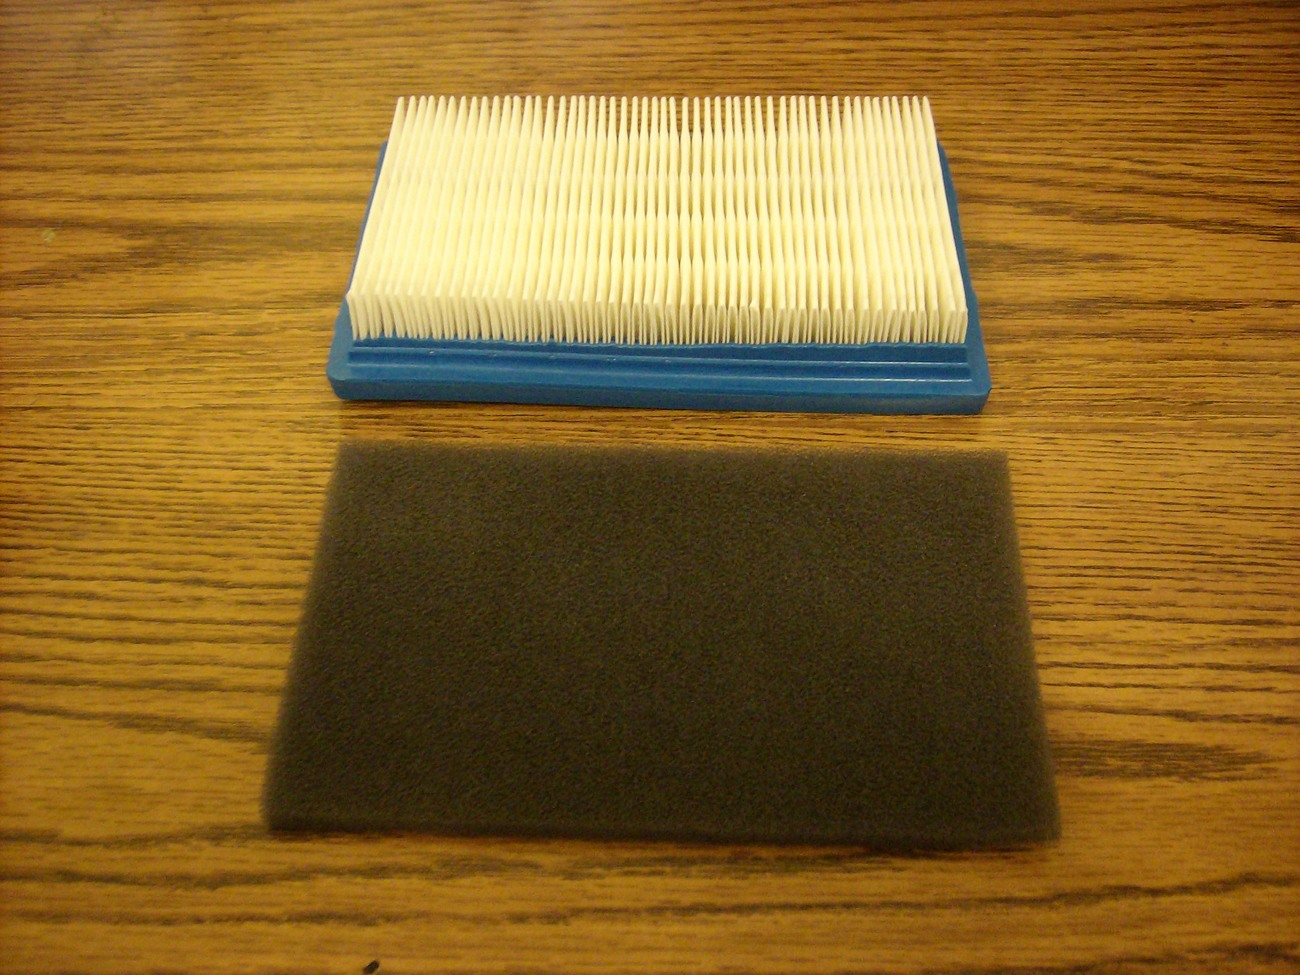 Cub cadet air filter and pre filter 751 10298a occ 751 10298 parts